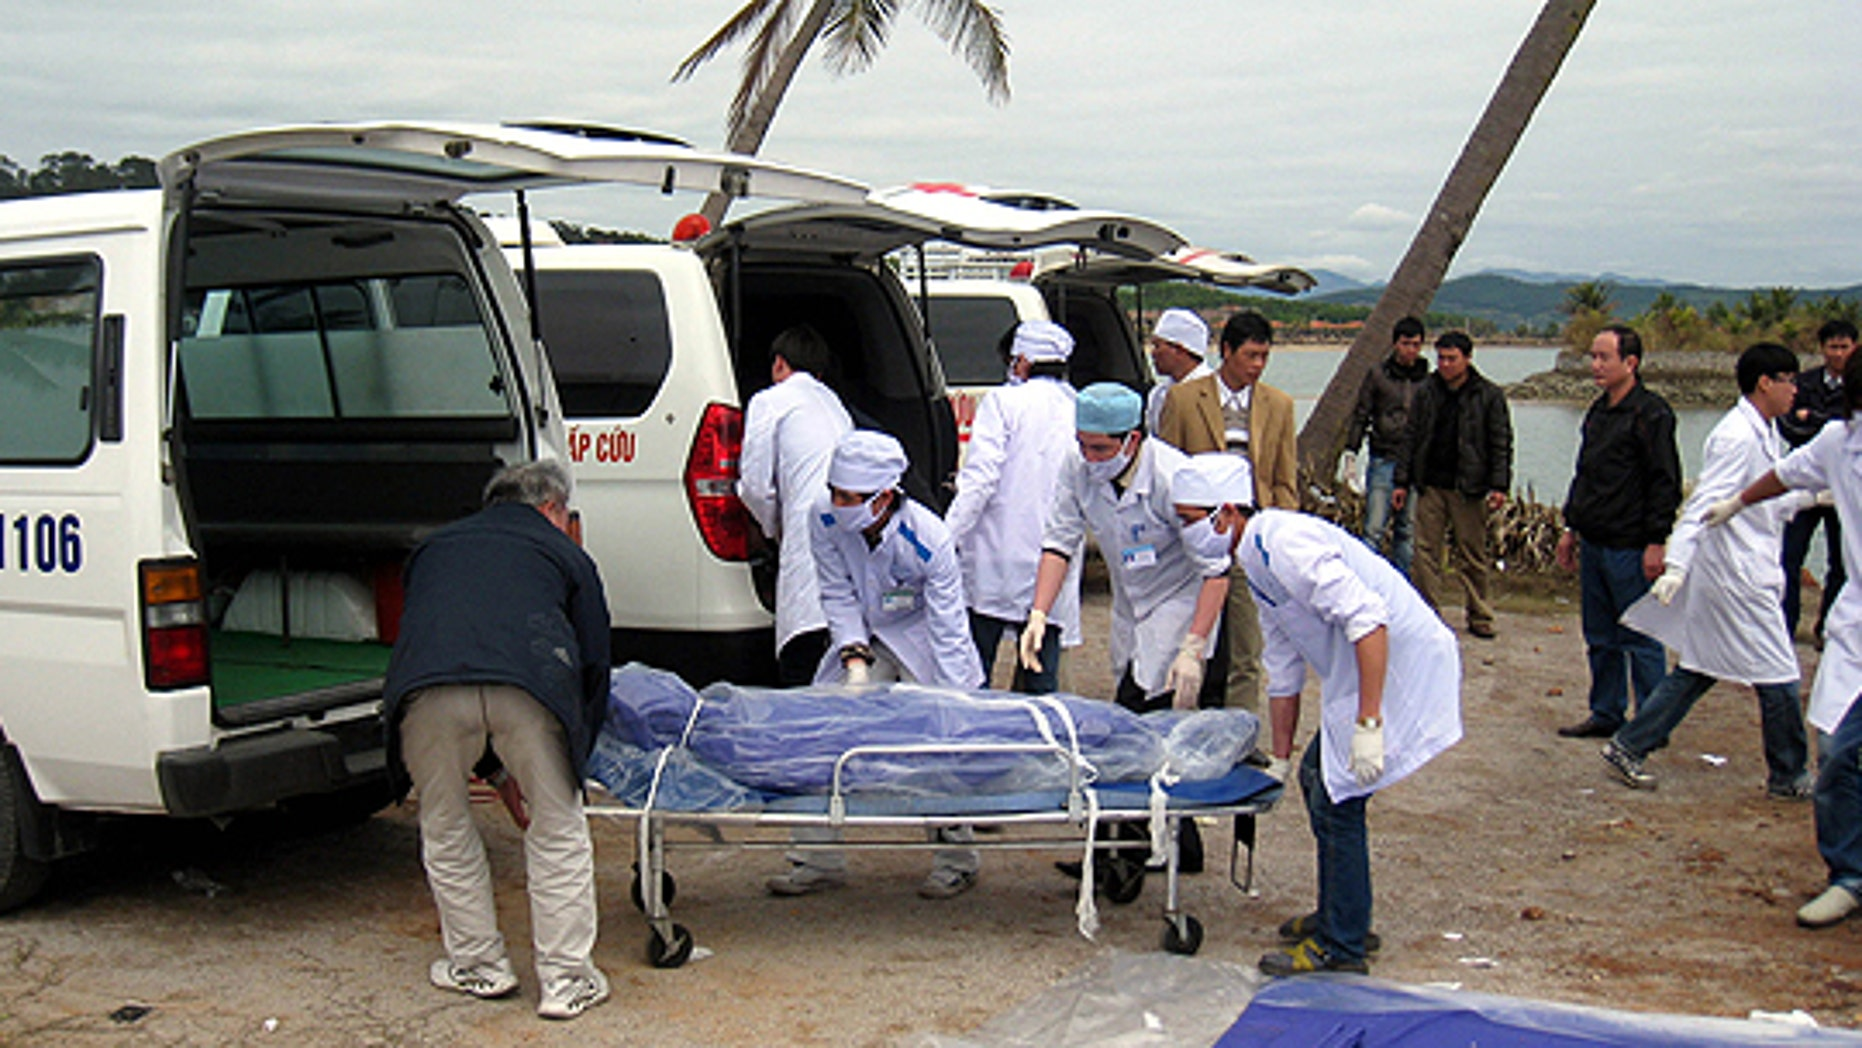 Feb. 17: Vietnamese health workers load the body of a sunken tourist boat victim to an ambulance in northern province of Quang Ninh, Vietnam.